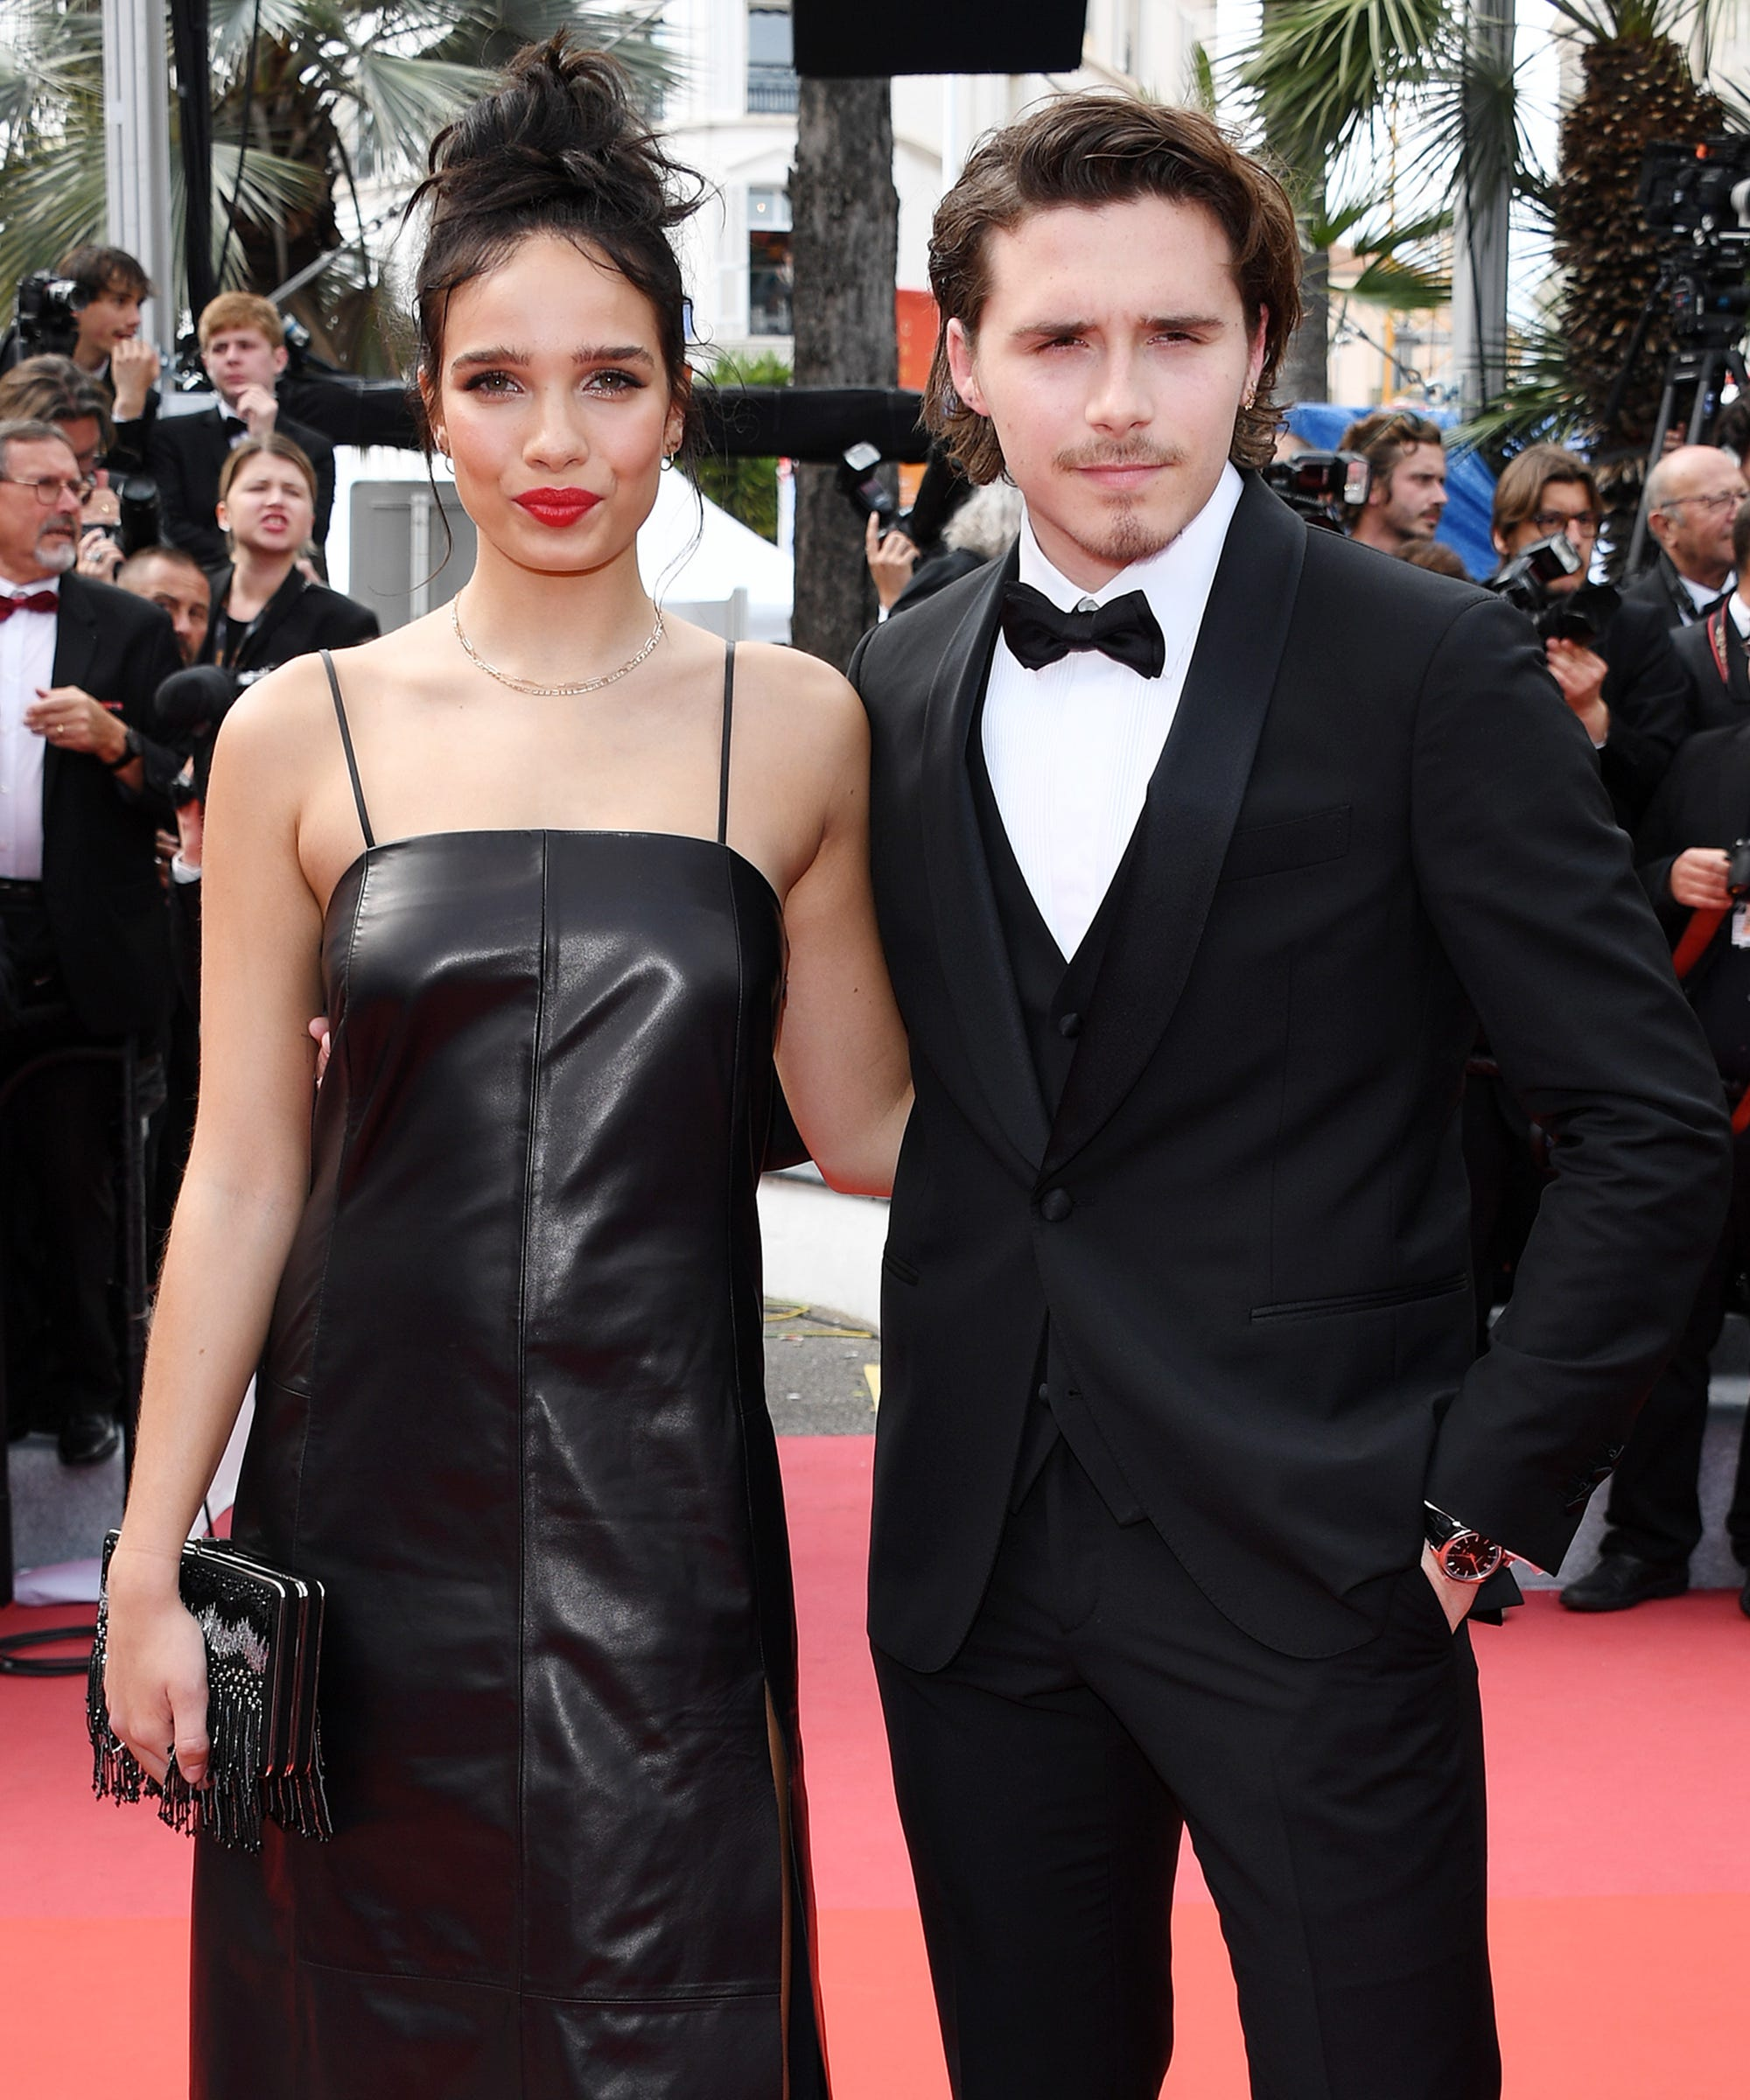 Brooklyn Beckham & Girlfriend Hana Cross Finally Made Their Red Carpet Debut